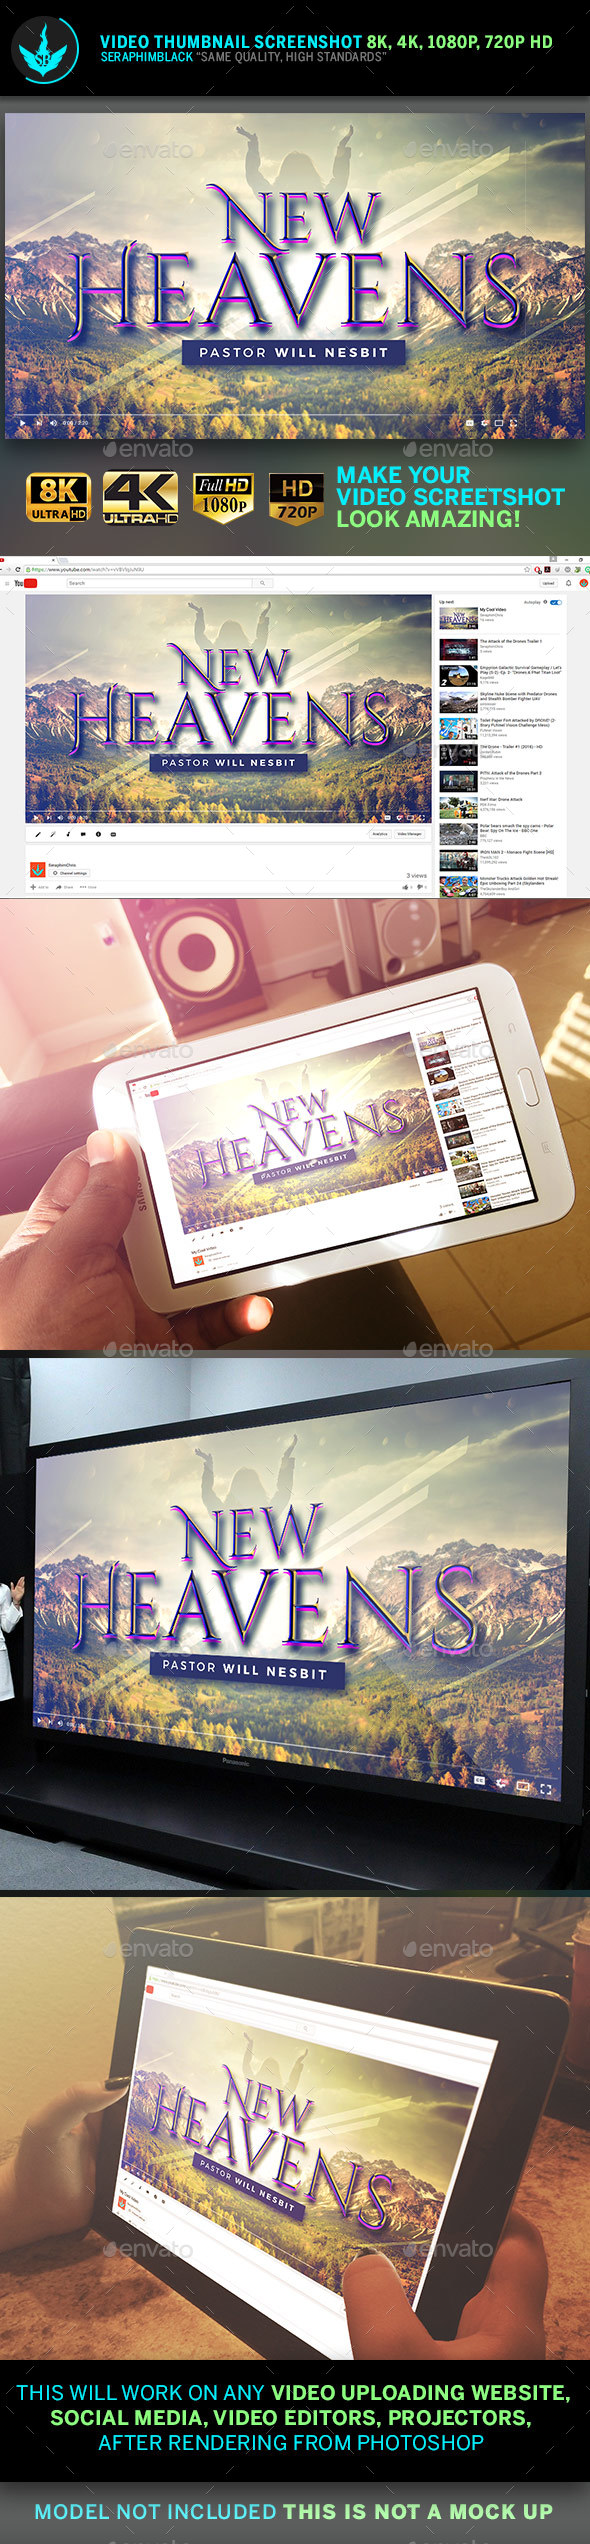 New Heavens YouTube Video Thumbnail Screenshot Template - YouTube Social Media